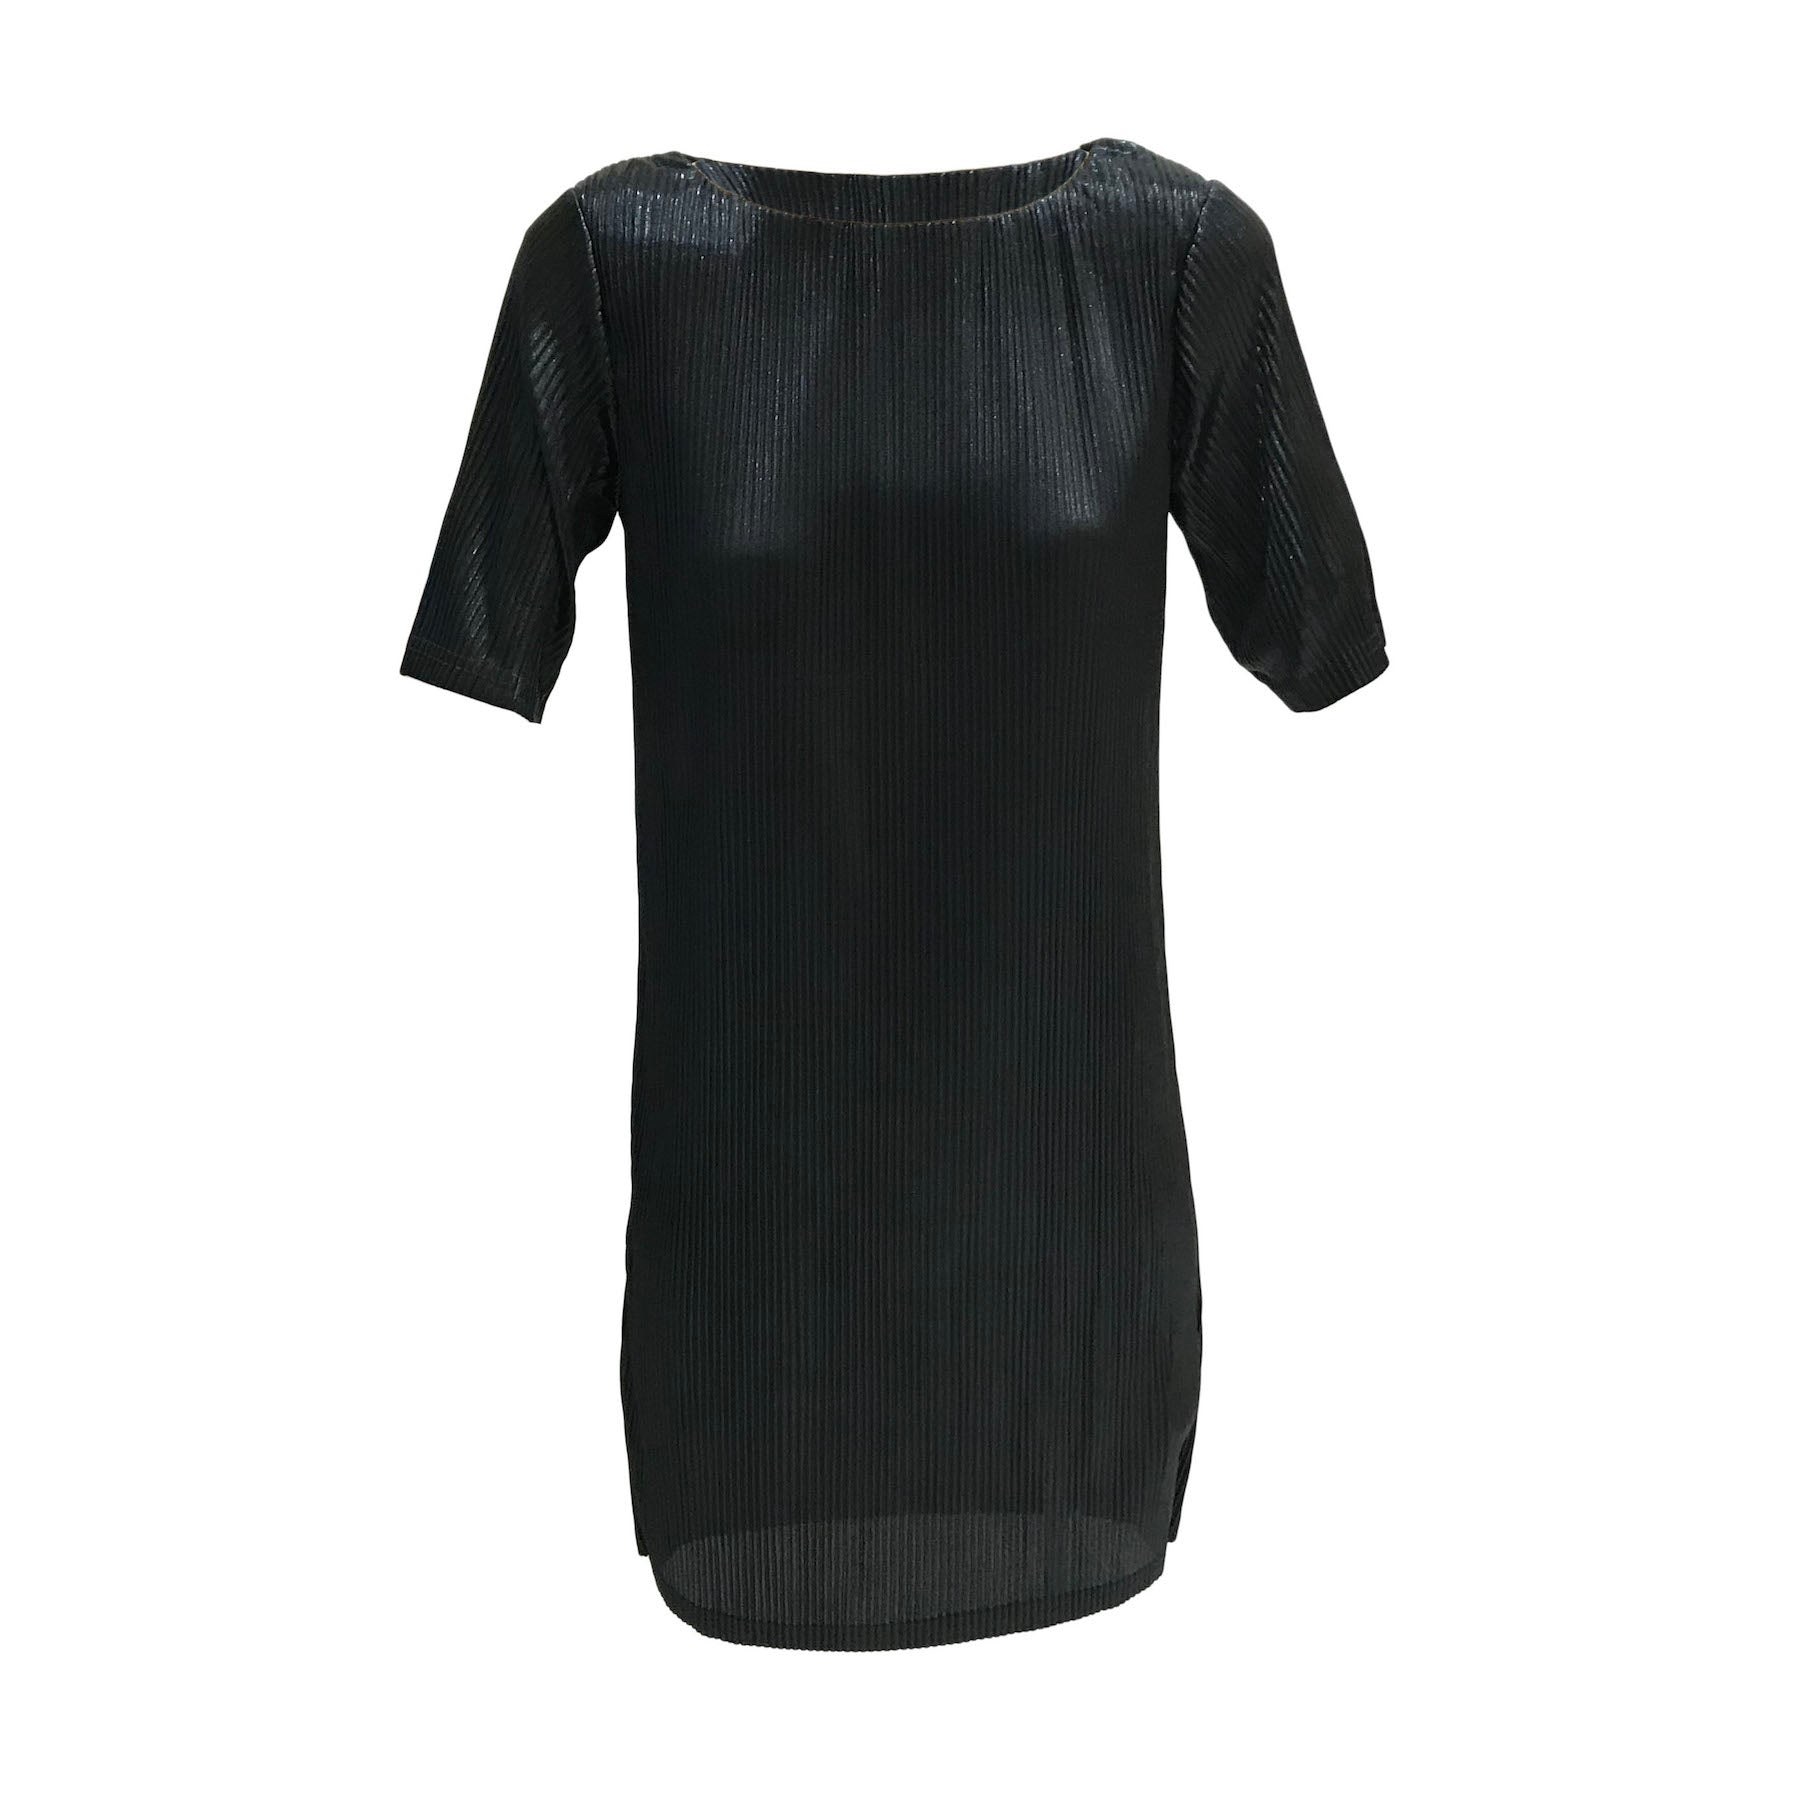 This beautiful black formal dress by Danish teen label Grunt will add glamour to any occasion. Short sleeves, generous cut and great stretch makes this the perfect dress.